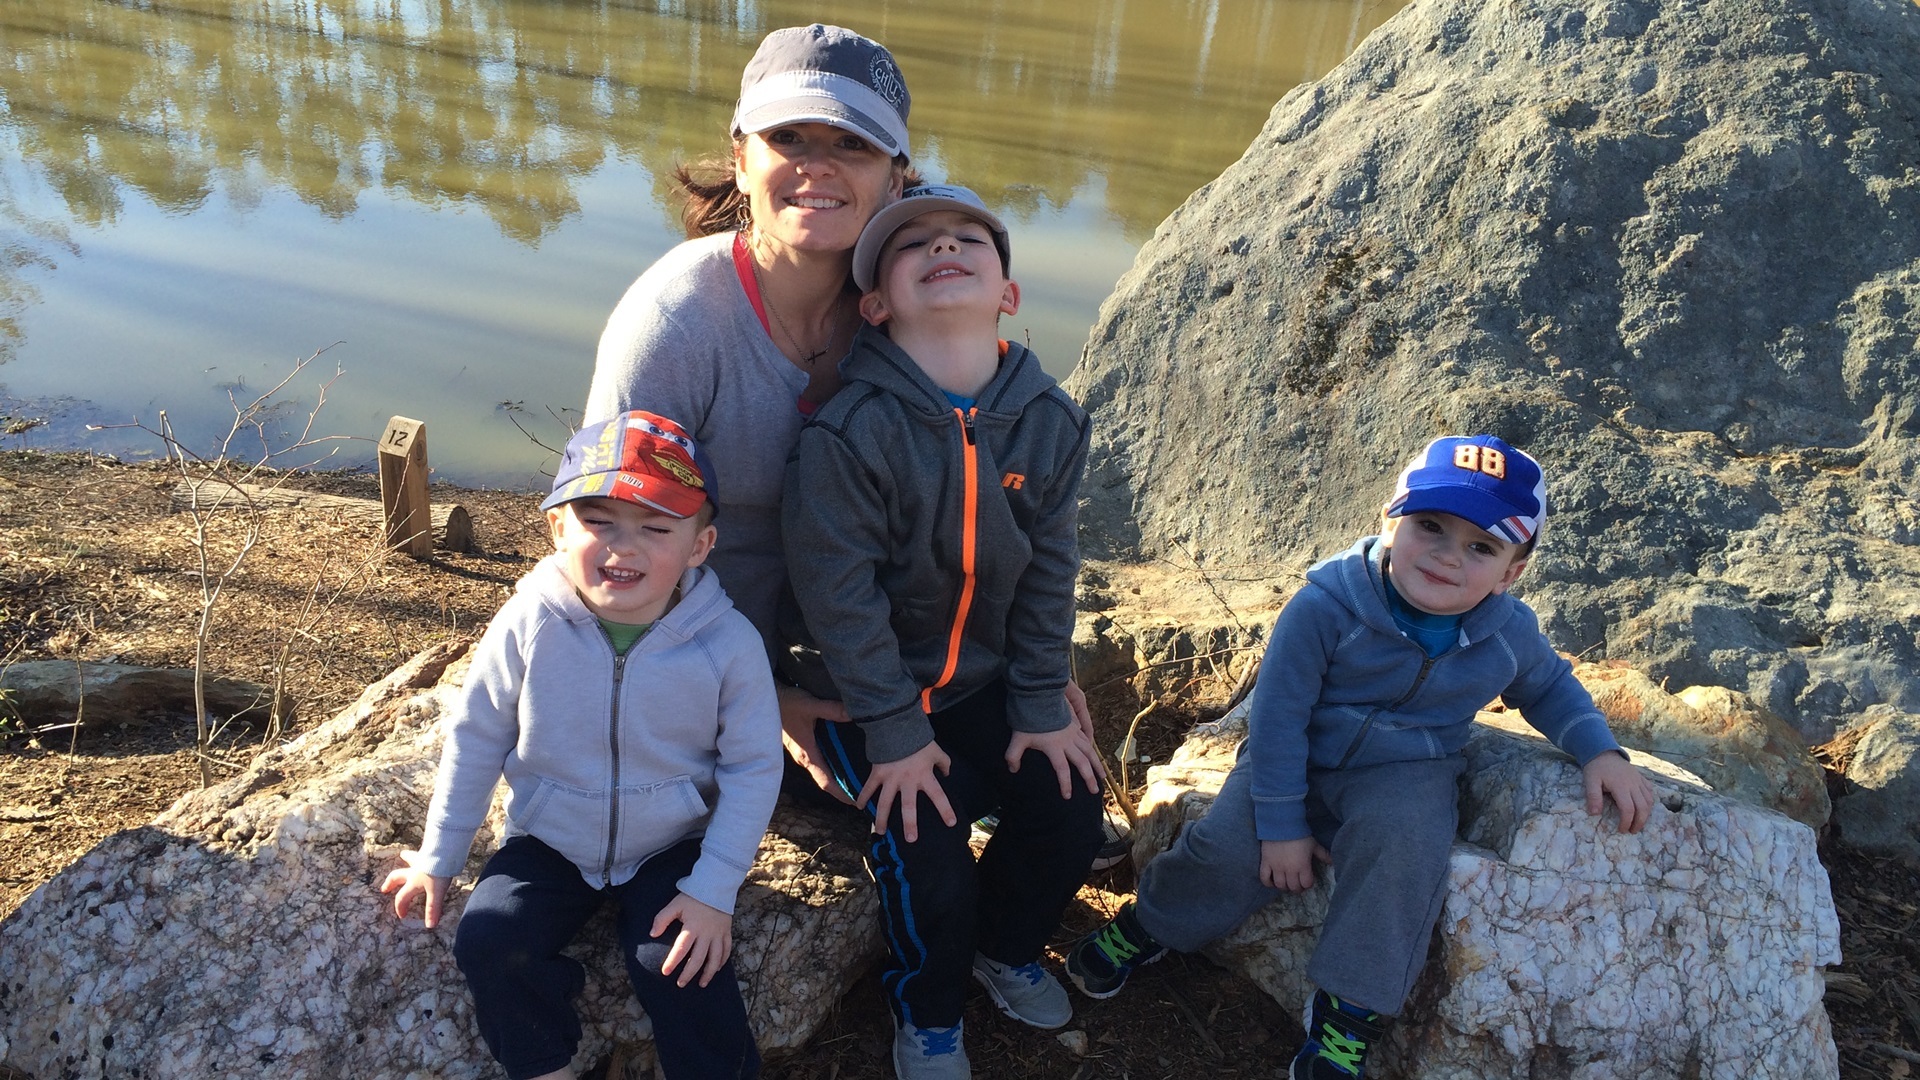 Joanna McCall and her sons Jacob, Issac and Caleb